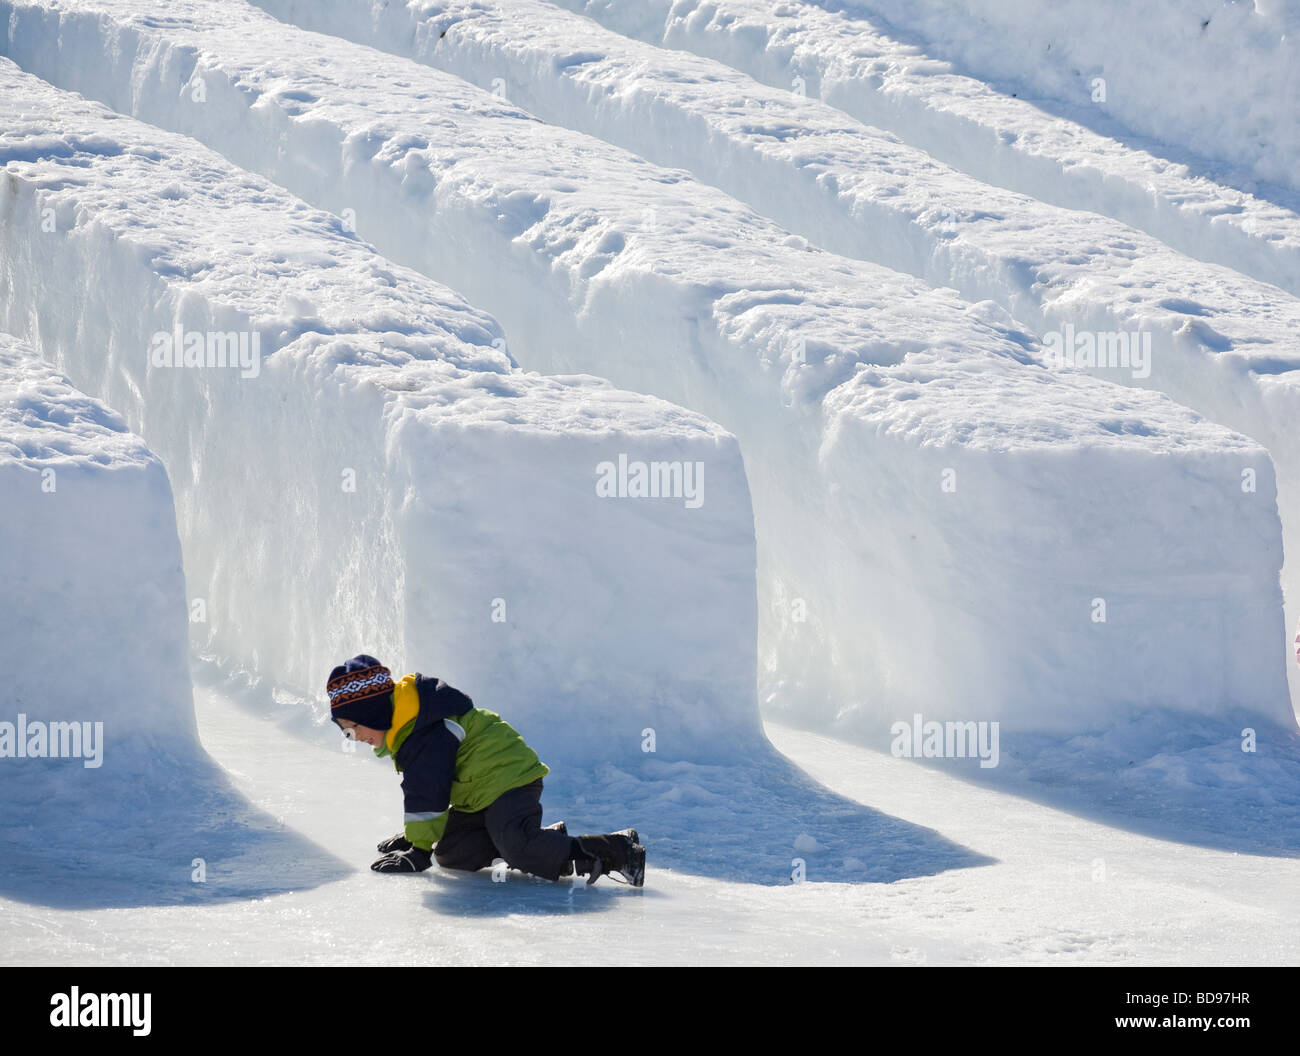 a9df43e4e8f0 After the Slide. A young boy tries to stand up on the slippery ice just